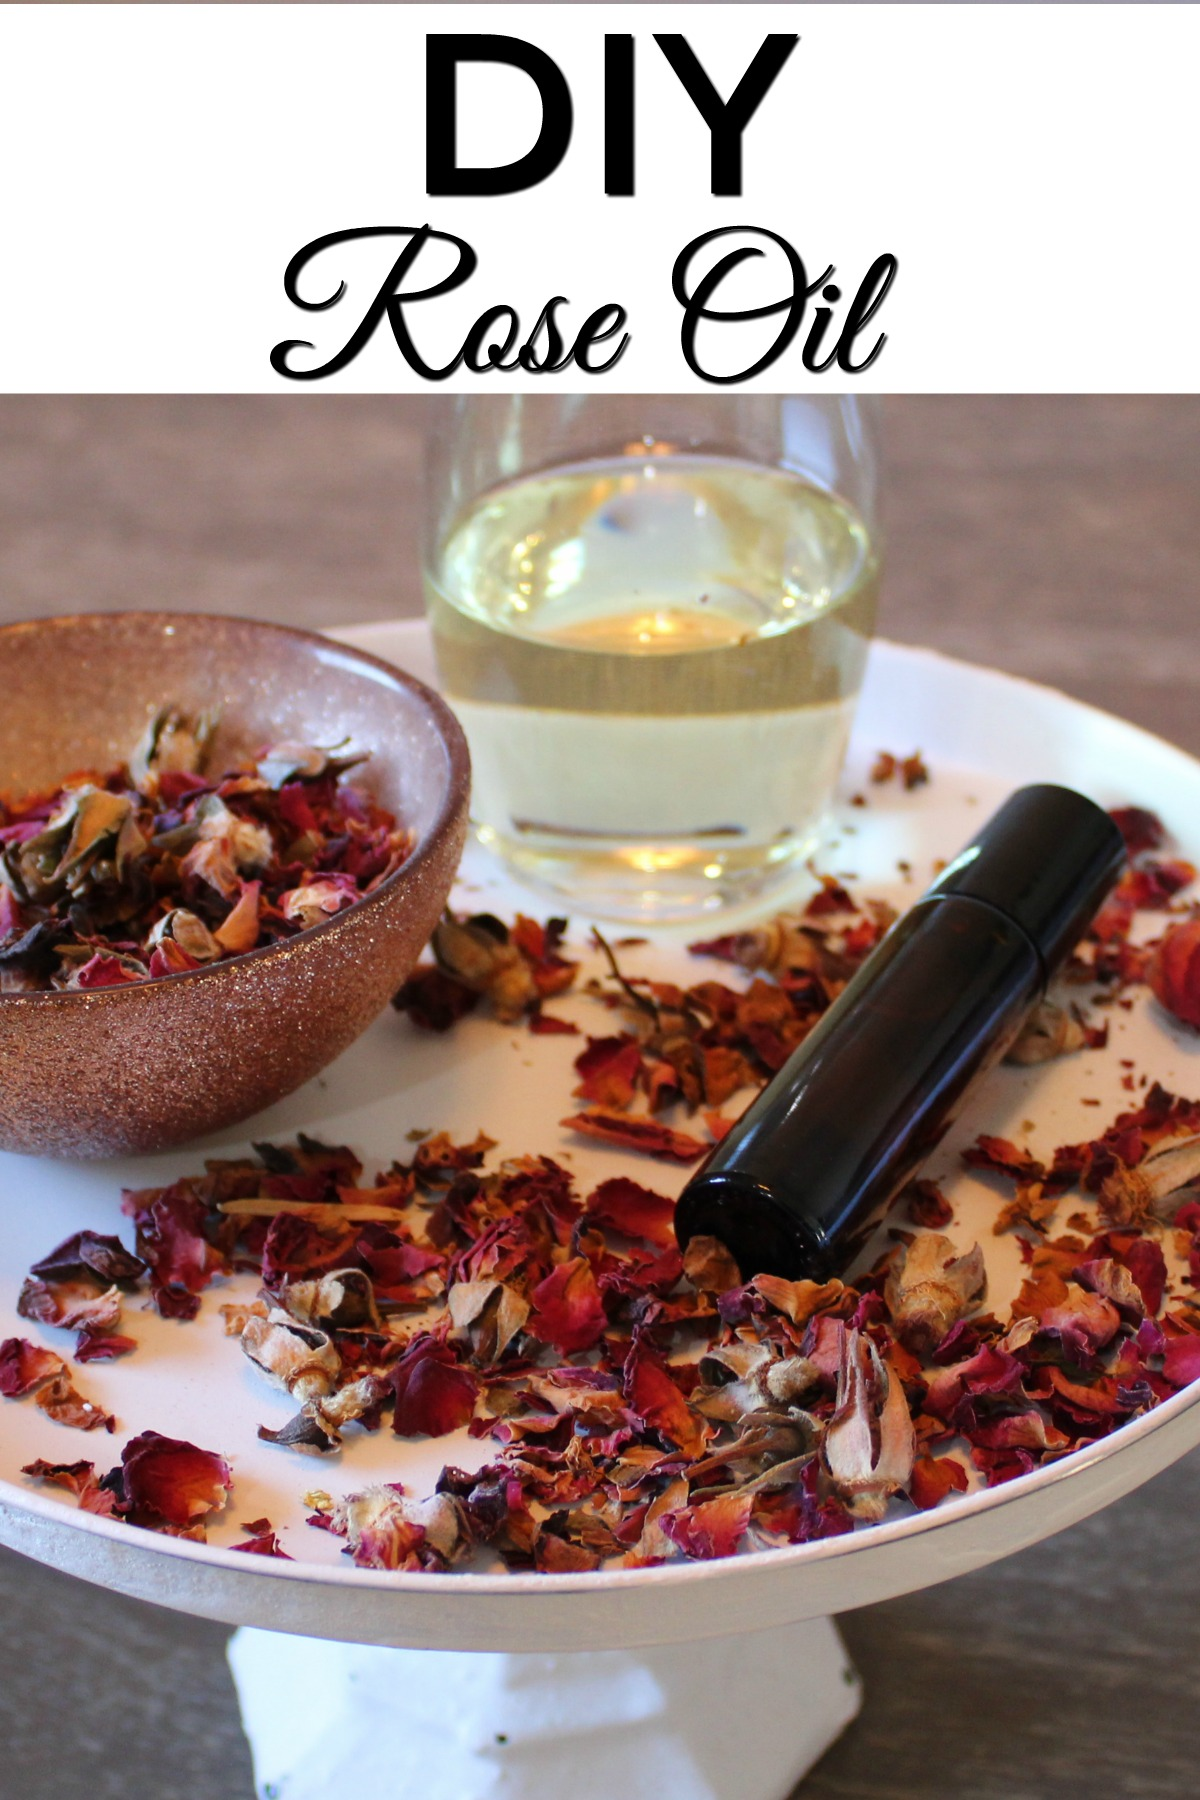 Hey guys, I'm back with another great beauty DIY! This DIY Rose Oil can be made in an afternoon and can be added to your beauty regimen.